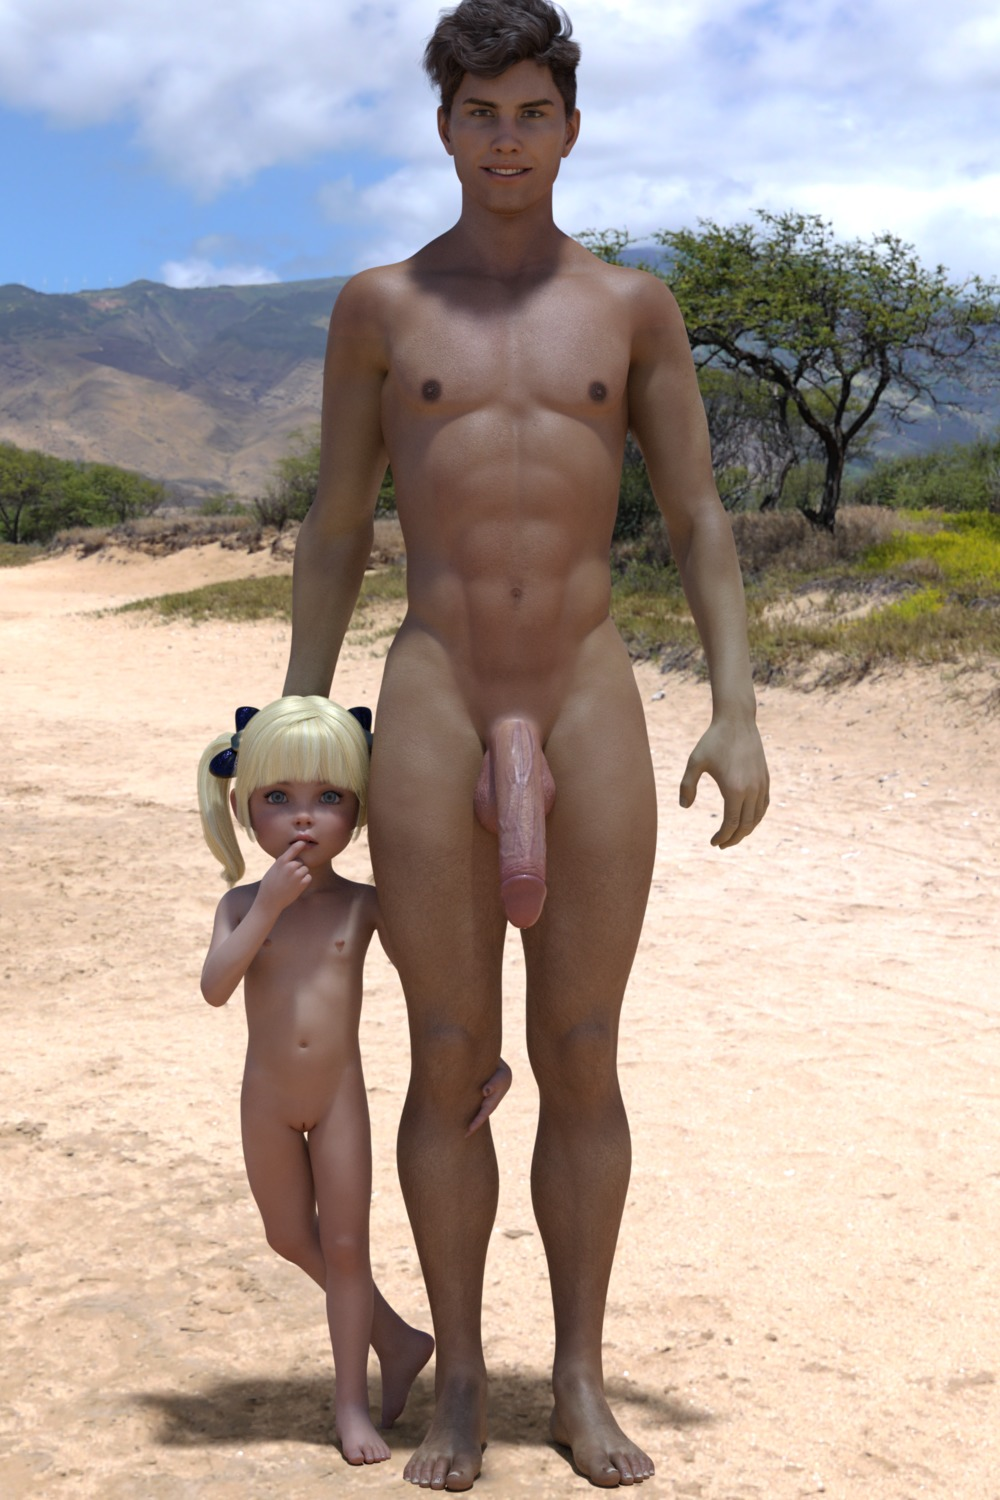 1boy 1girl 3dcg age_difference bangs barefoot blonde_hair blue_eyes blunt_bangs cammie finger_to_mouth flat_chest hand_on_another's_head looking_at_viewer mimic72 navel nipples nude outdoors penis photorealistic pose pussy shadow smile standing testicles twin_tails